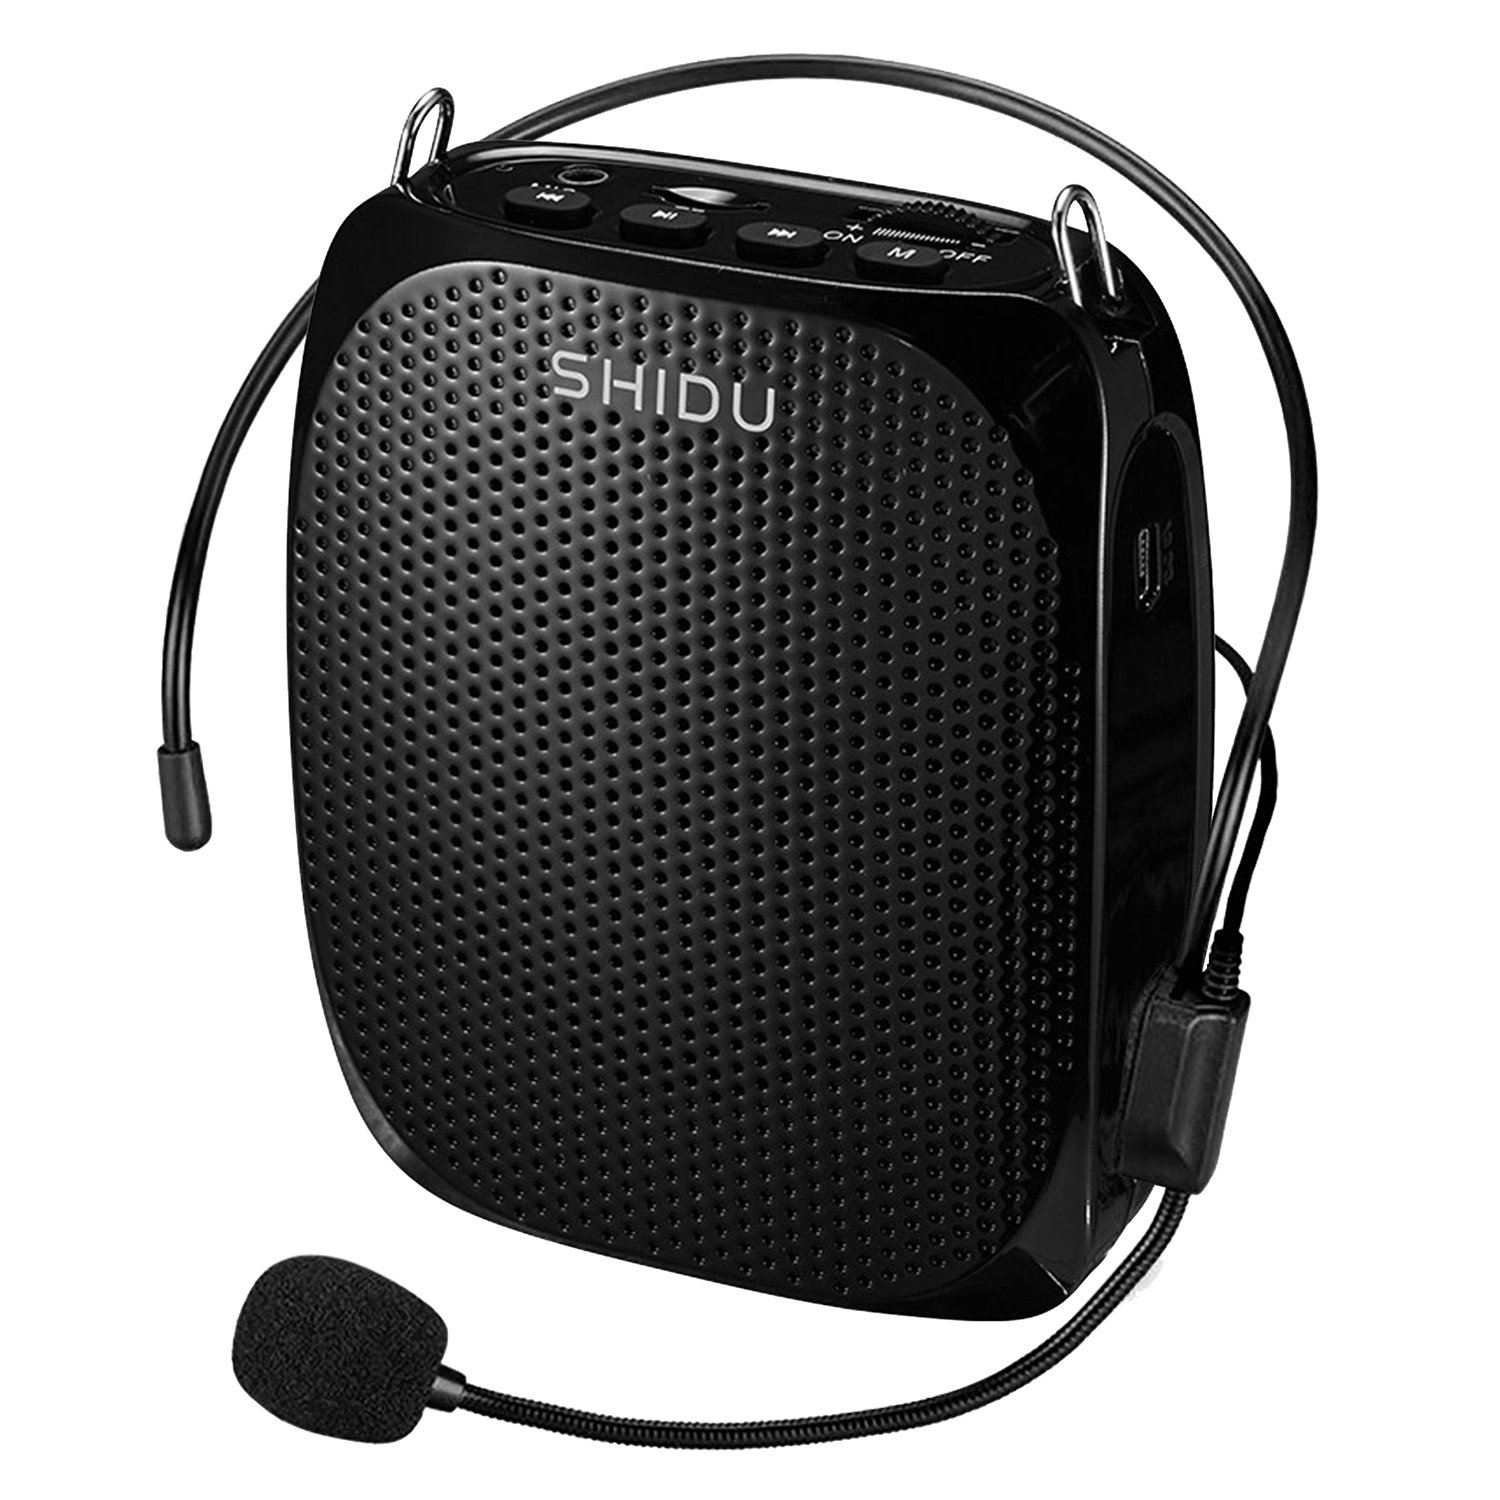 Portable Voice Amplifier SHIDU S258 10W Ultralight Rechargeable Mini Pa Speaker Supports MP3/TF/USB Professional Headset Microphone for Teachers Fitness Instructors and More by HW HAOWORKS